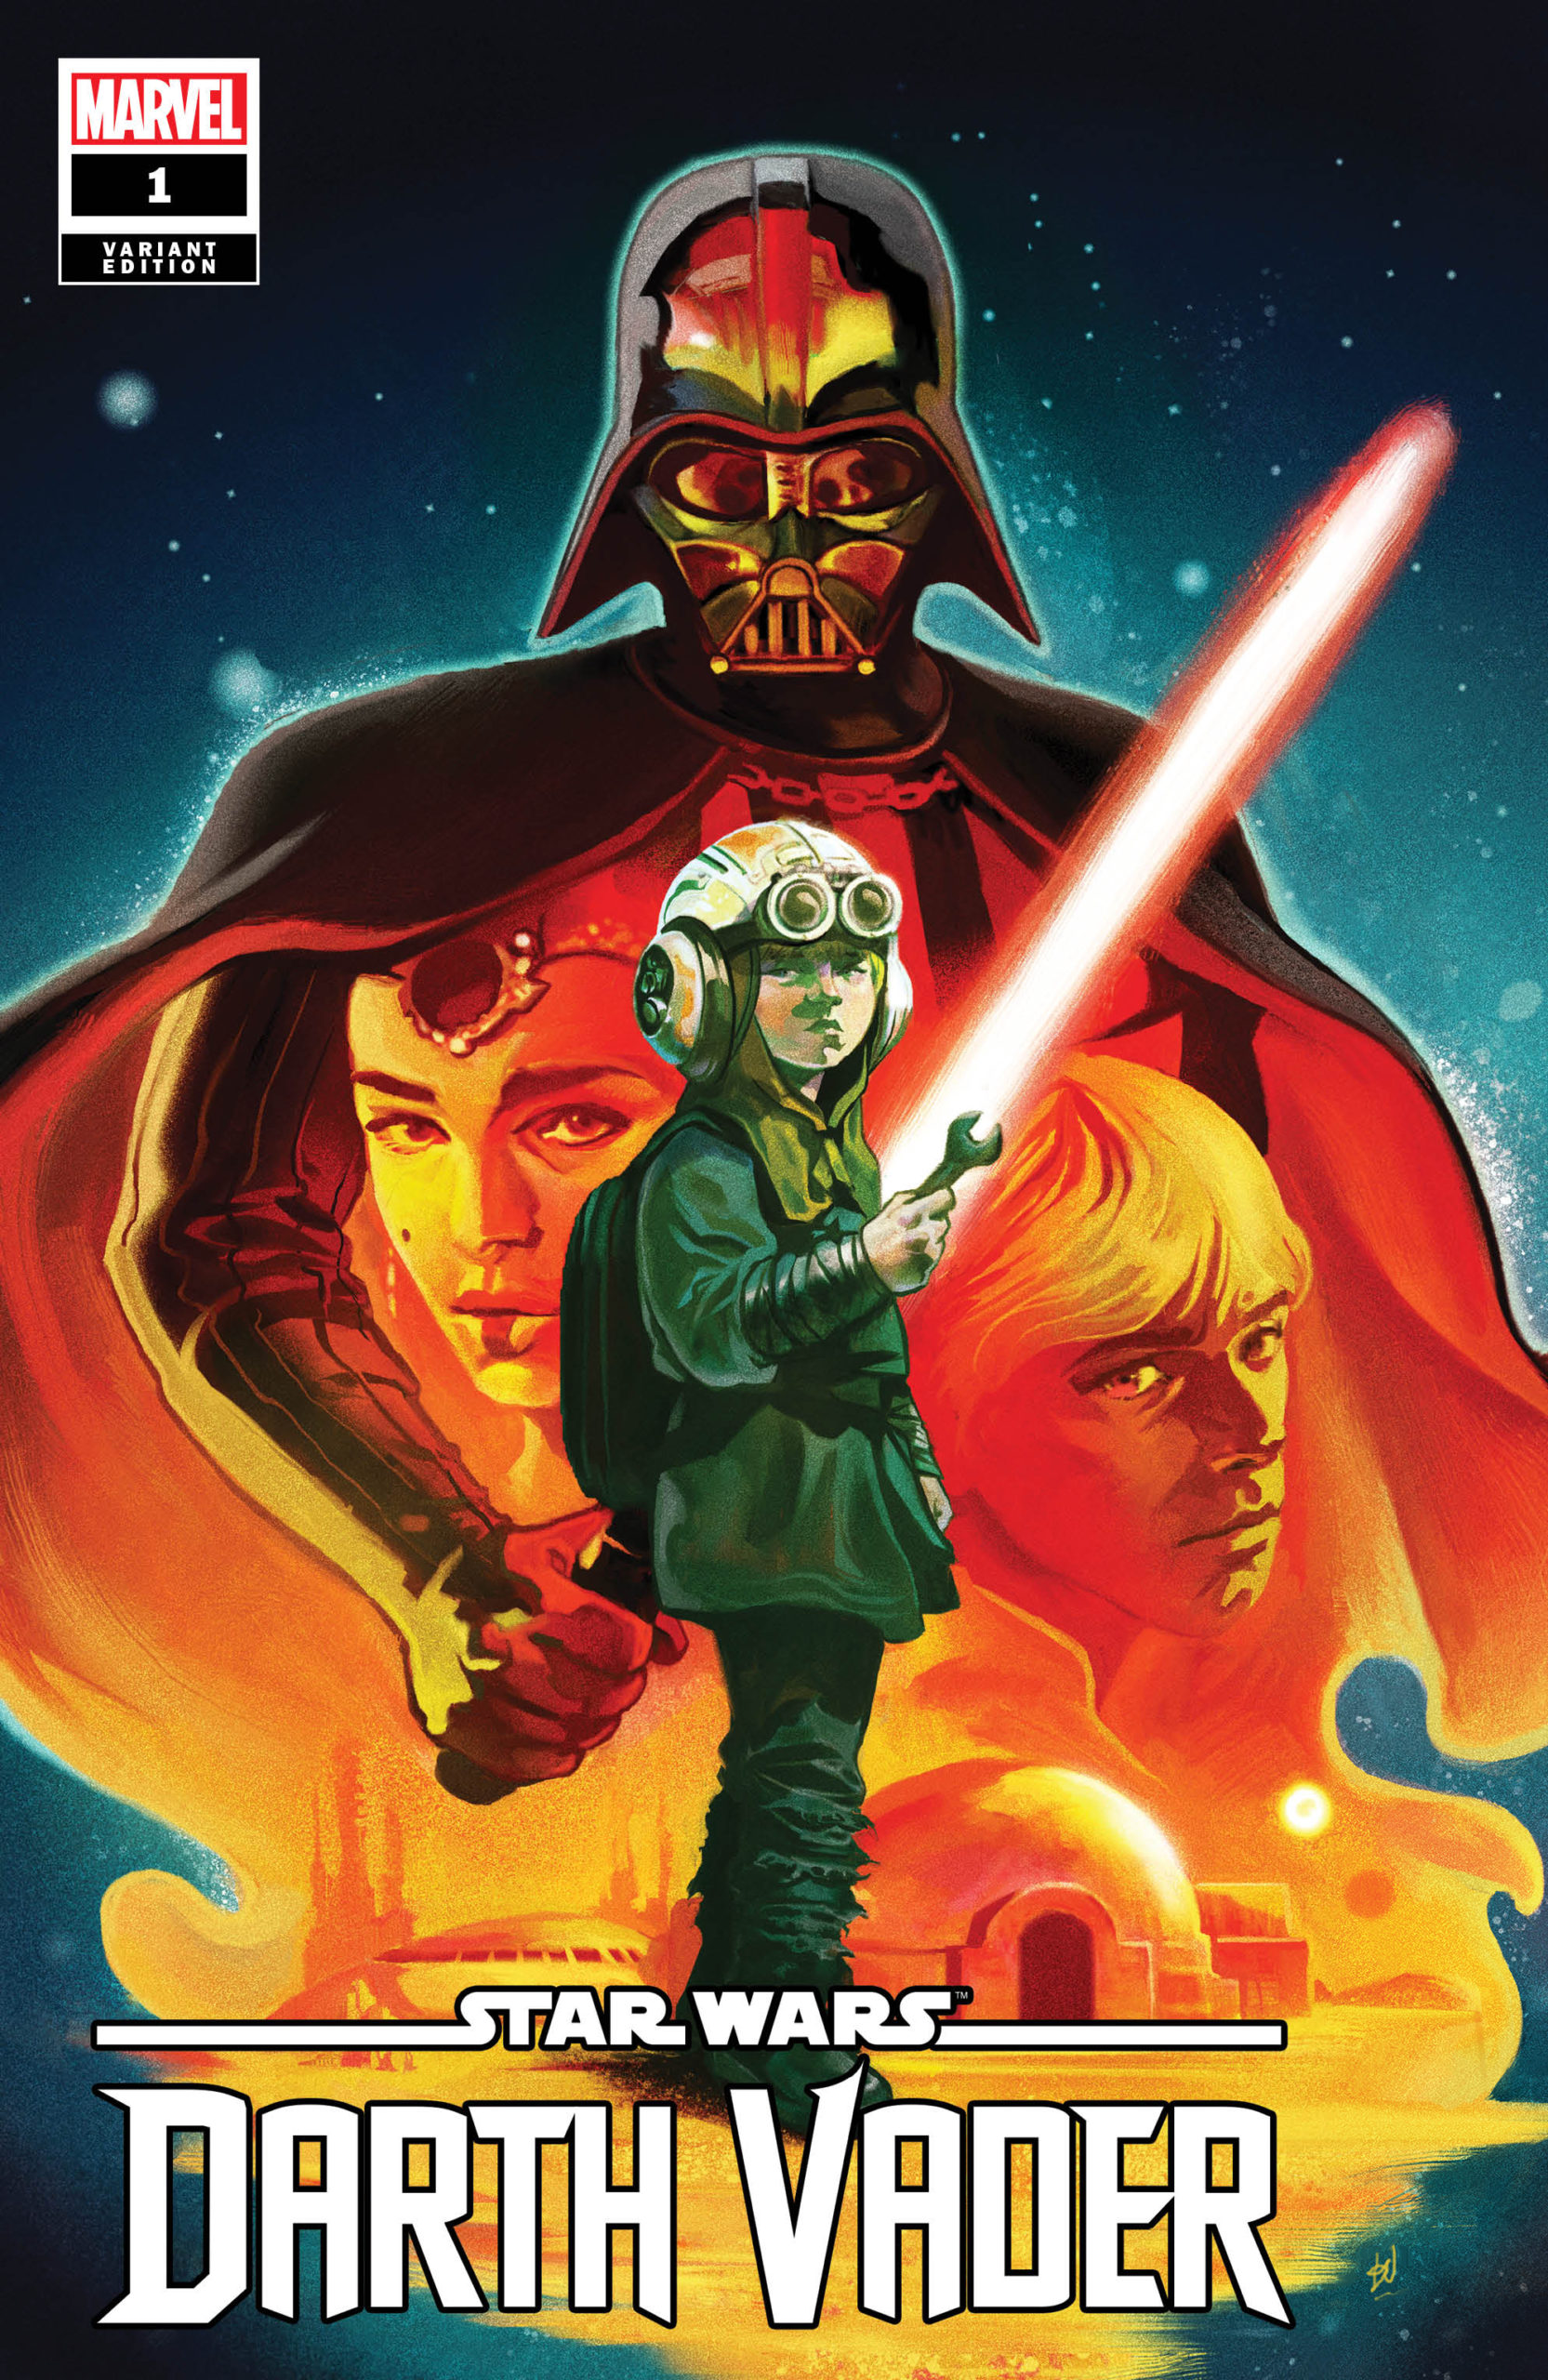 Darth Vader #1 (Mike del Mundo Variant Cover) (05.02.2020)